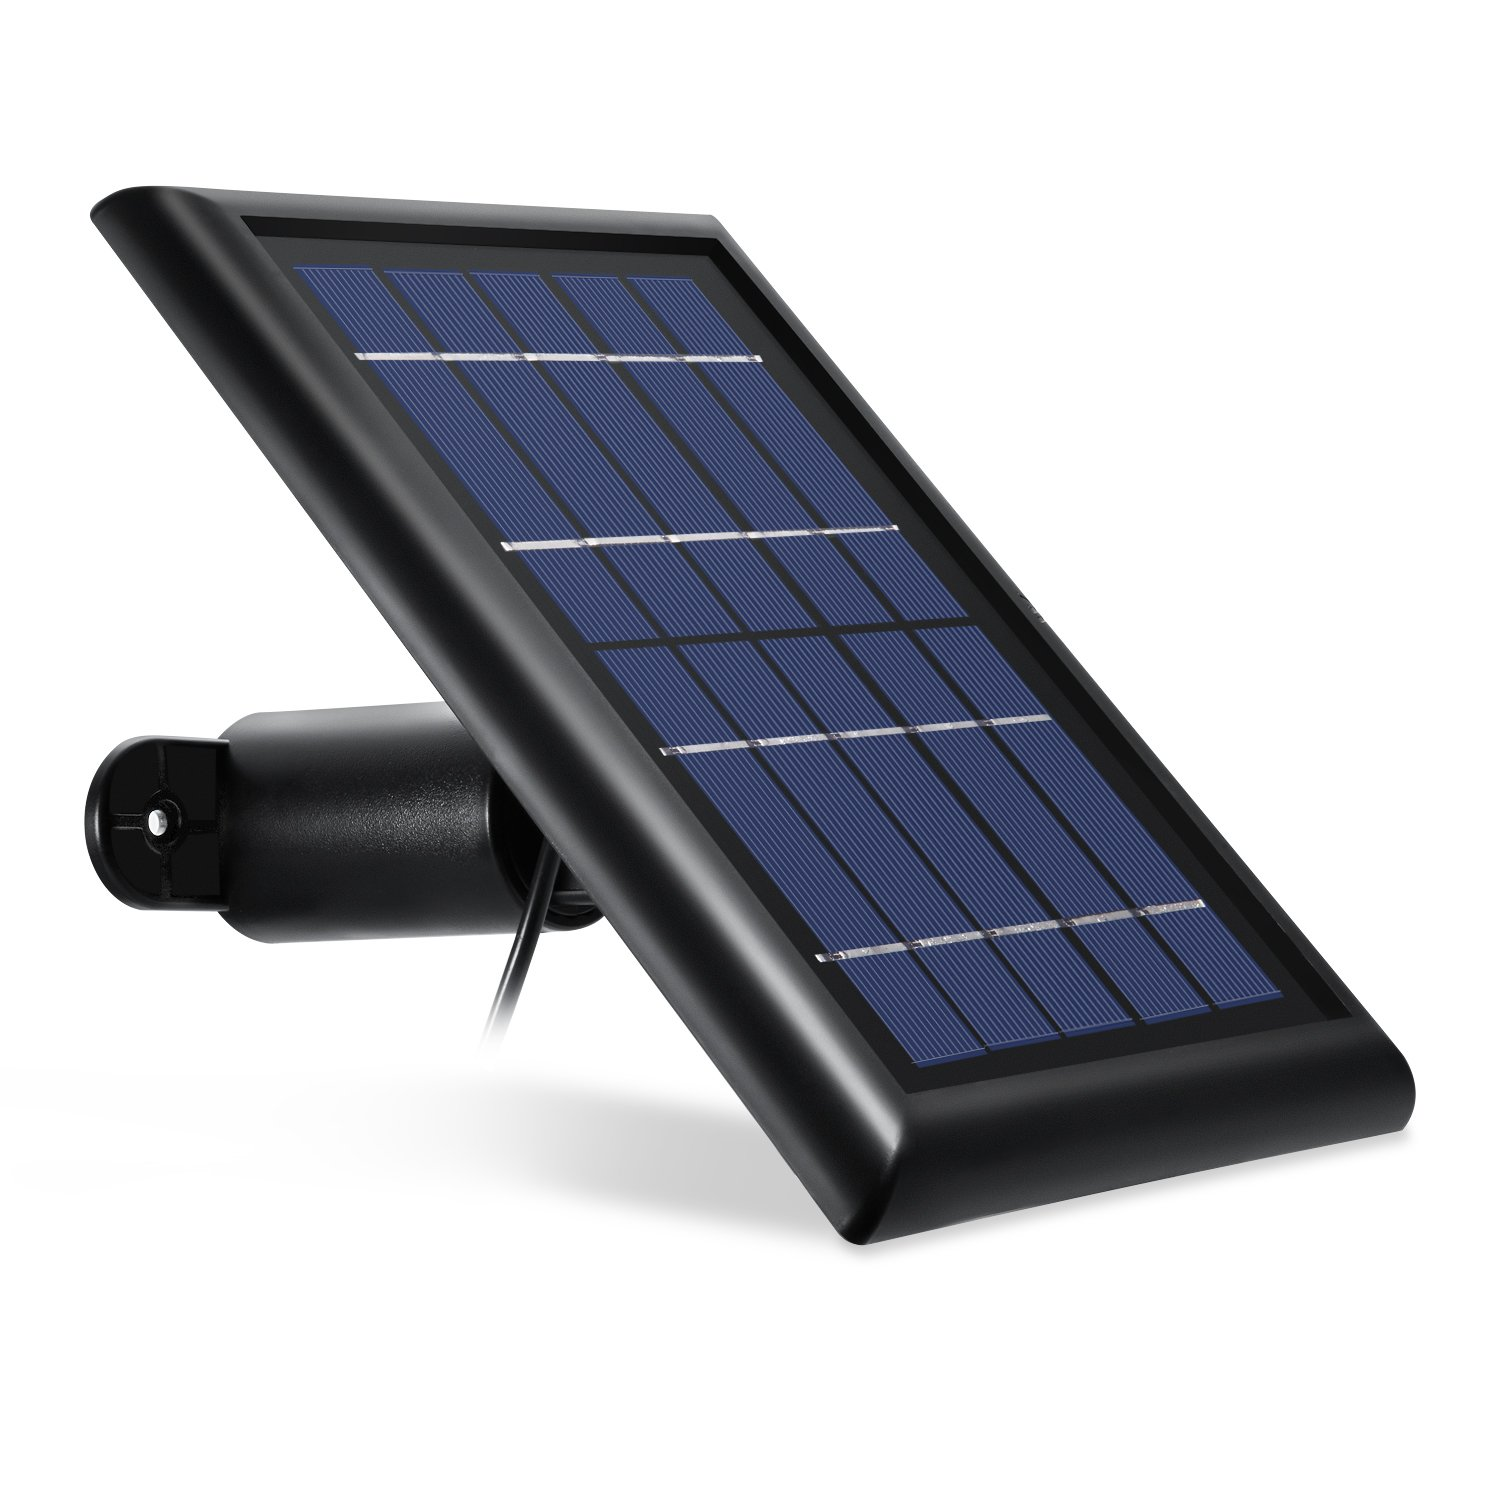 Solar Panel Compatible With Arlo Pro and Arlo GO (NOT Compatible with Arlo Pro 2), Power your Arlo Outdoor Camera continuously with our new Solar Charging Device – by Wasserstein by Wasserstein